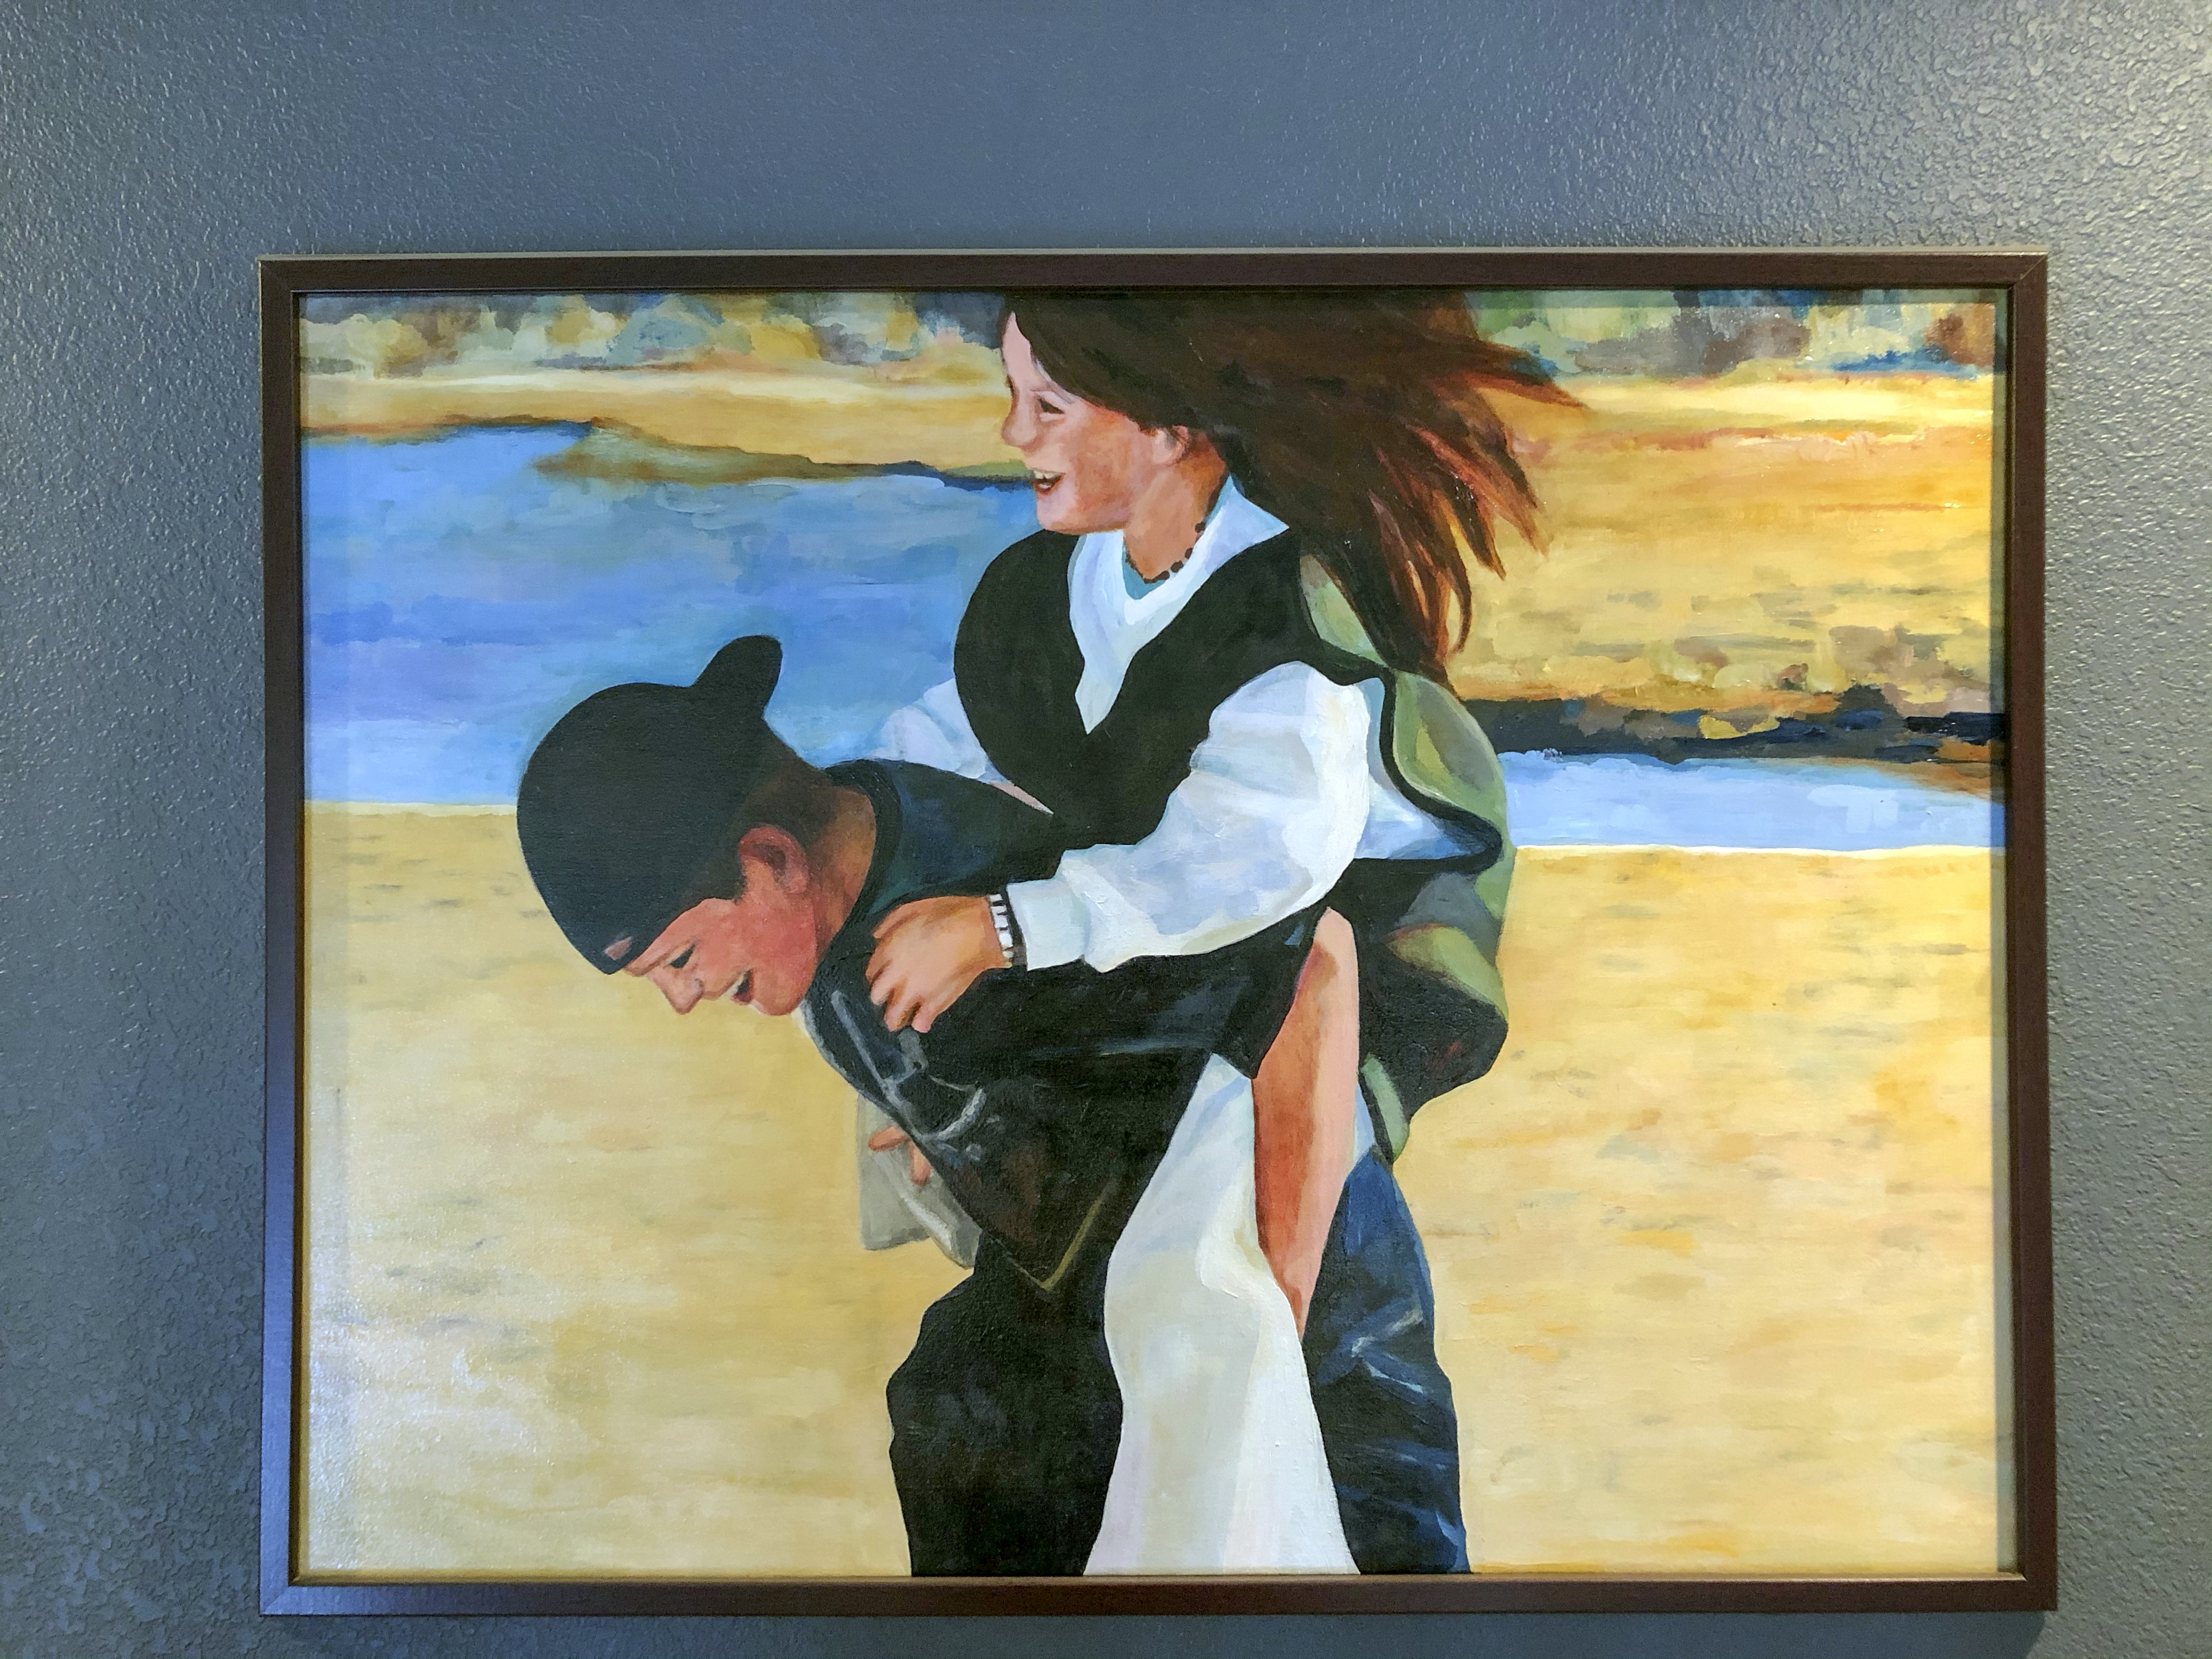 A painting of two children. A boy is giving the girl a piggyback ride. the children are laughing and having fun